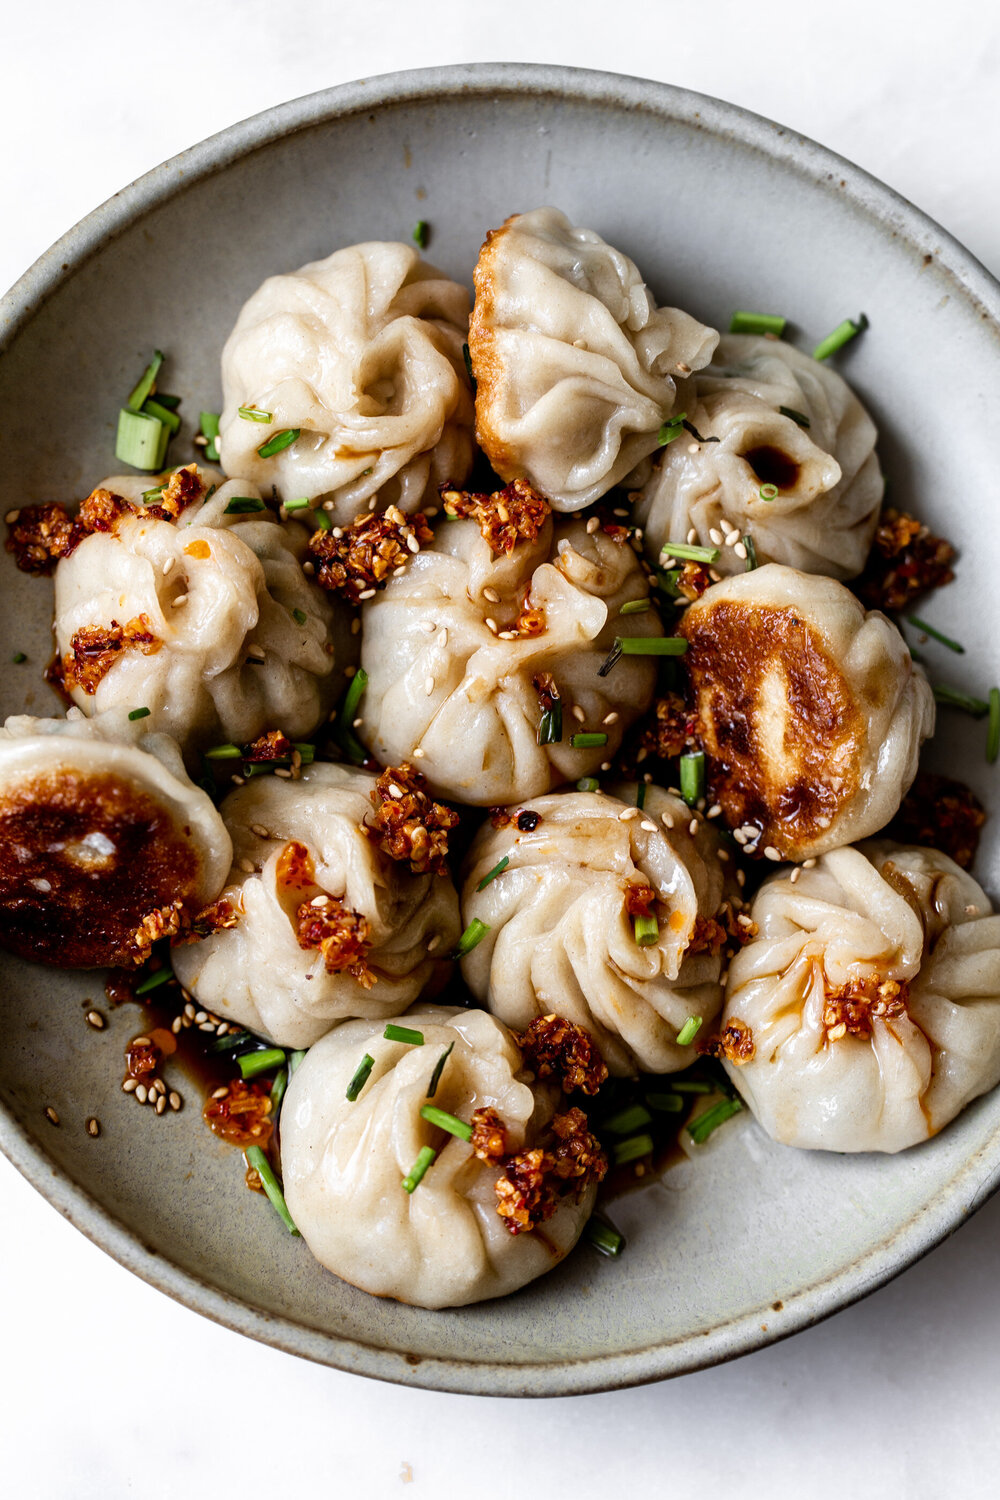 Juicy Pork & Chive Pan-Fried Dumplings